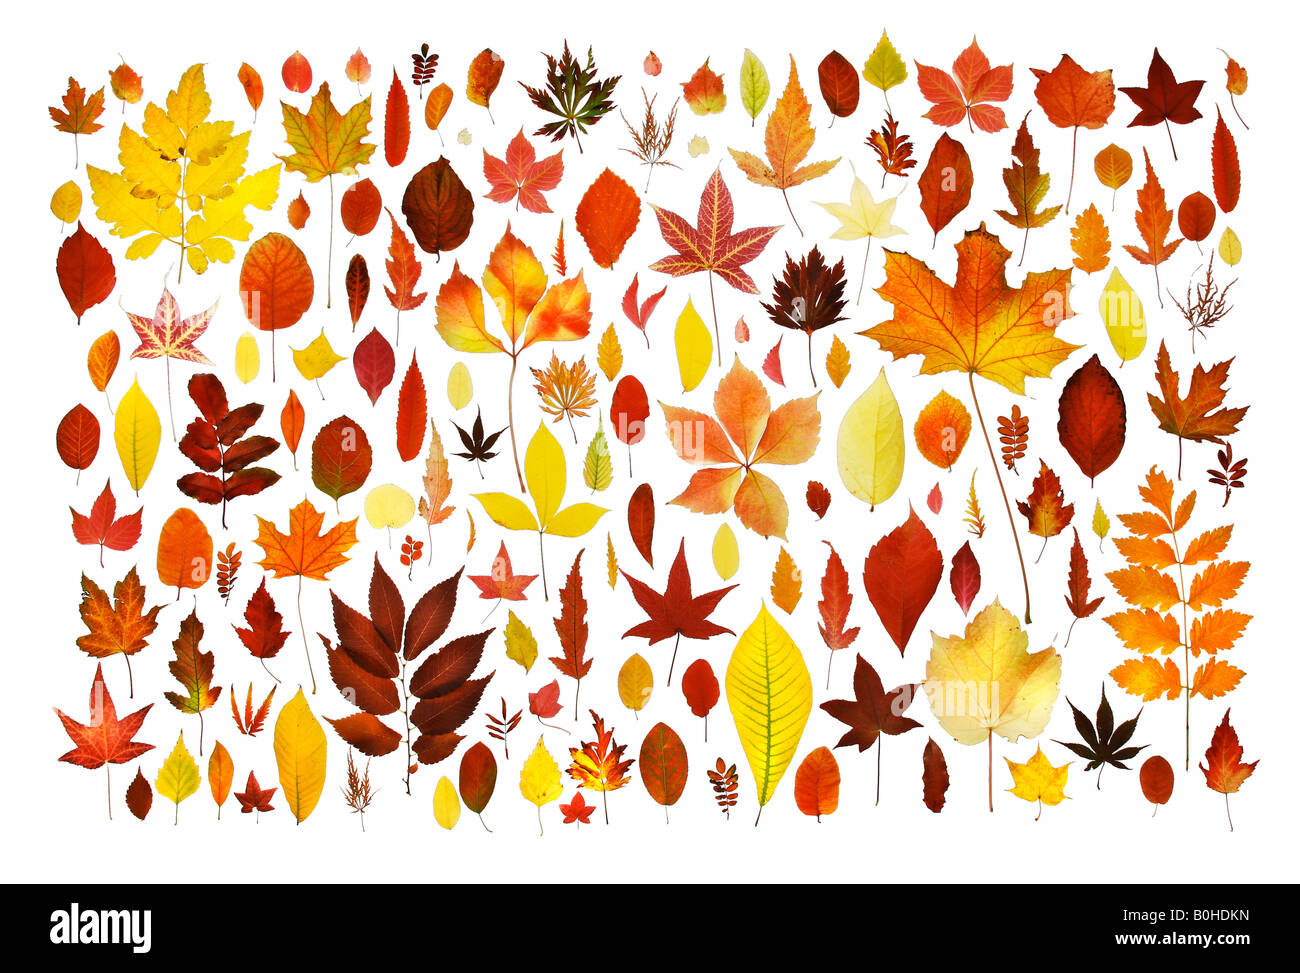 Collection of various autumn coloured leaves - Stock Image